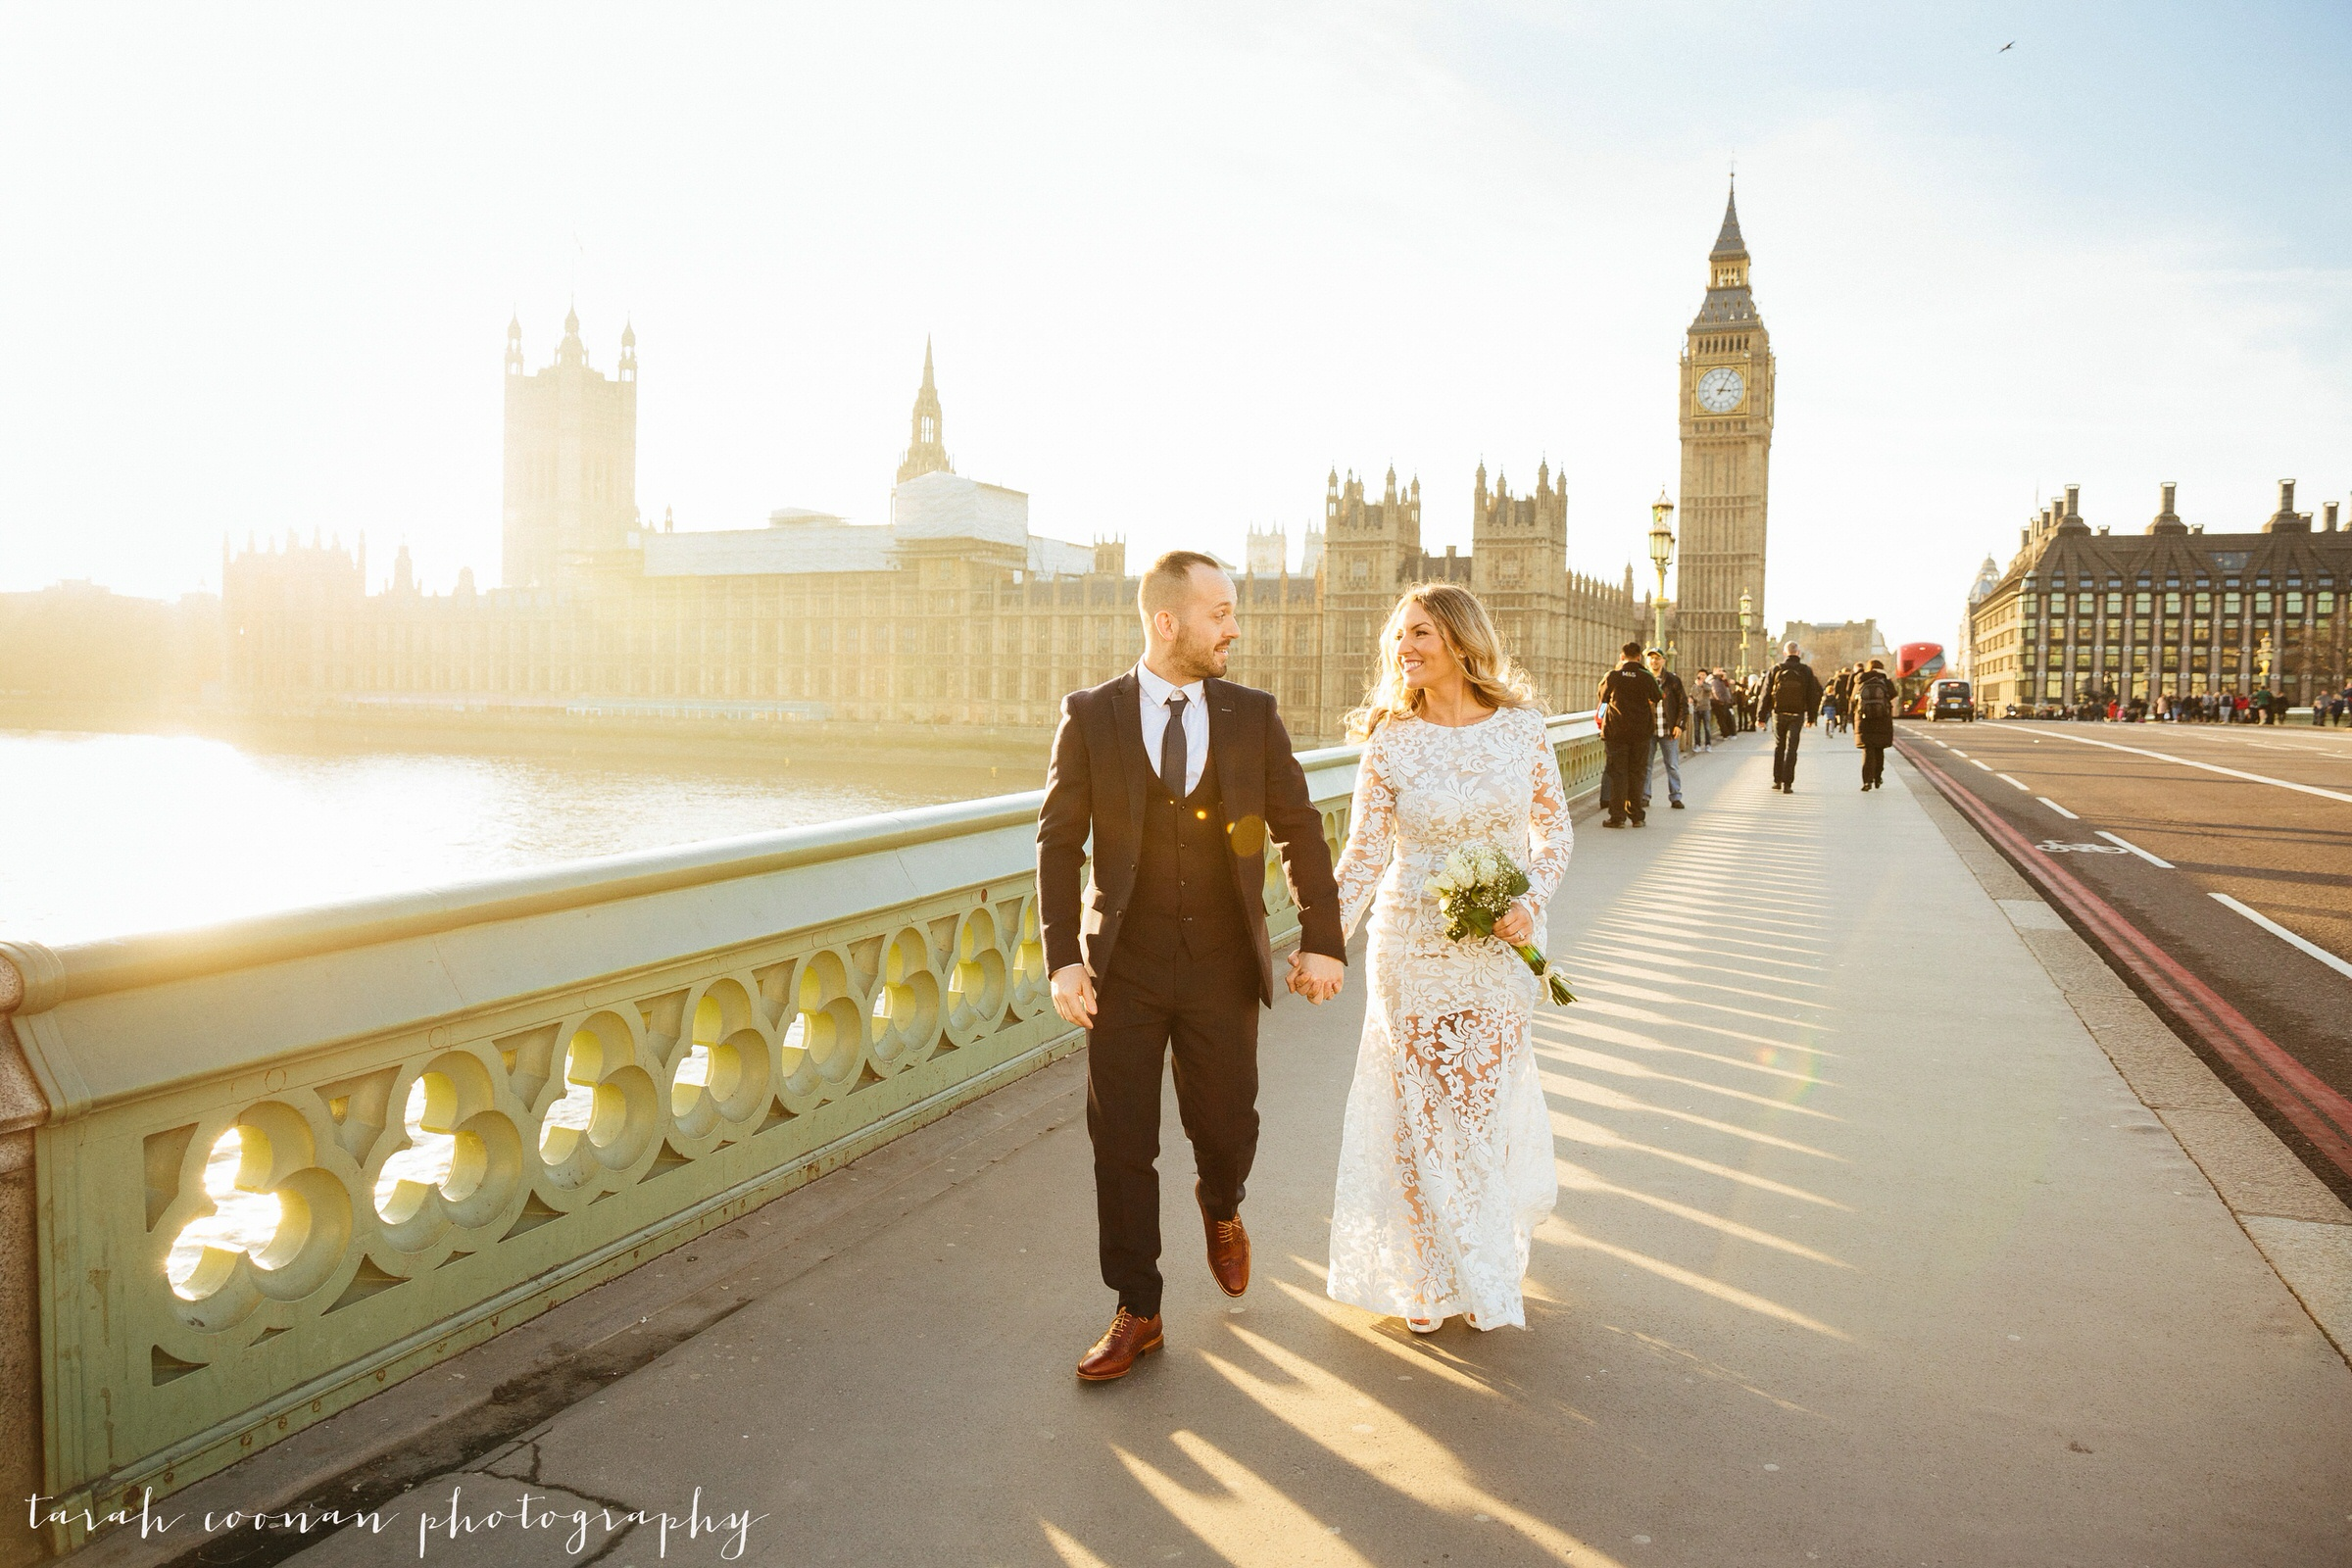 Westminster Bridge photoshoot